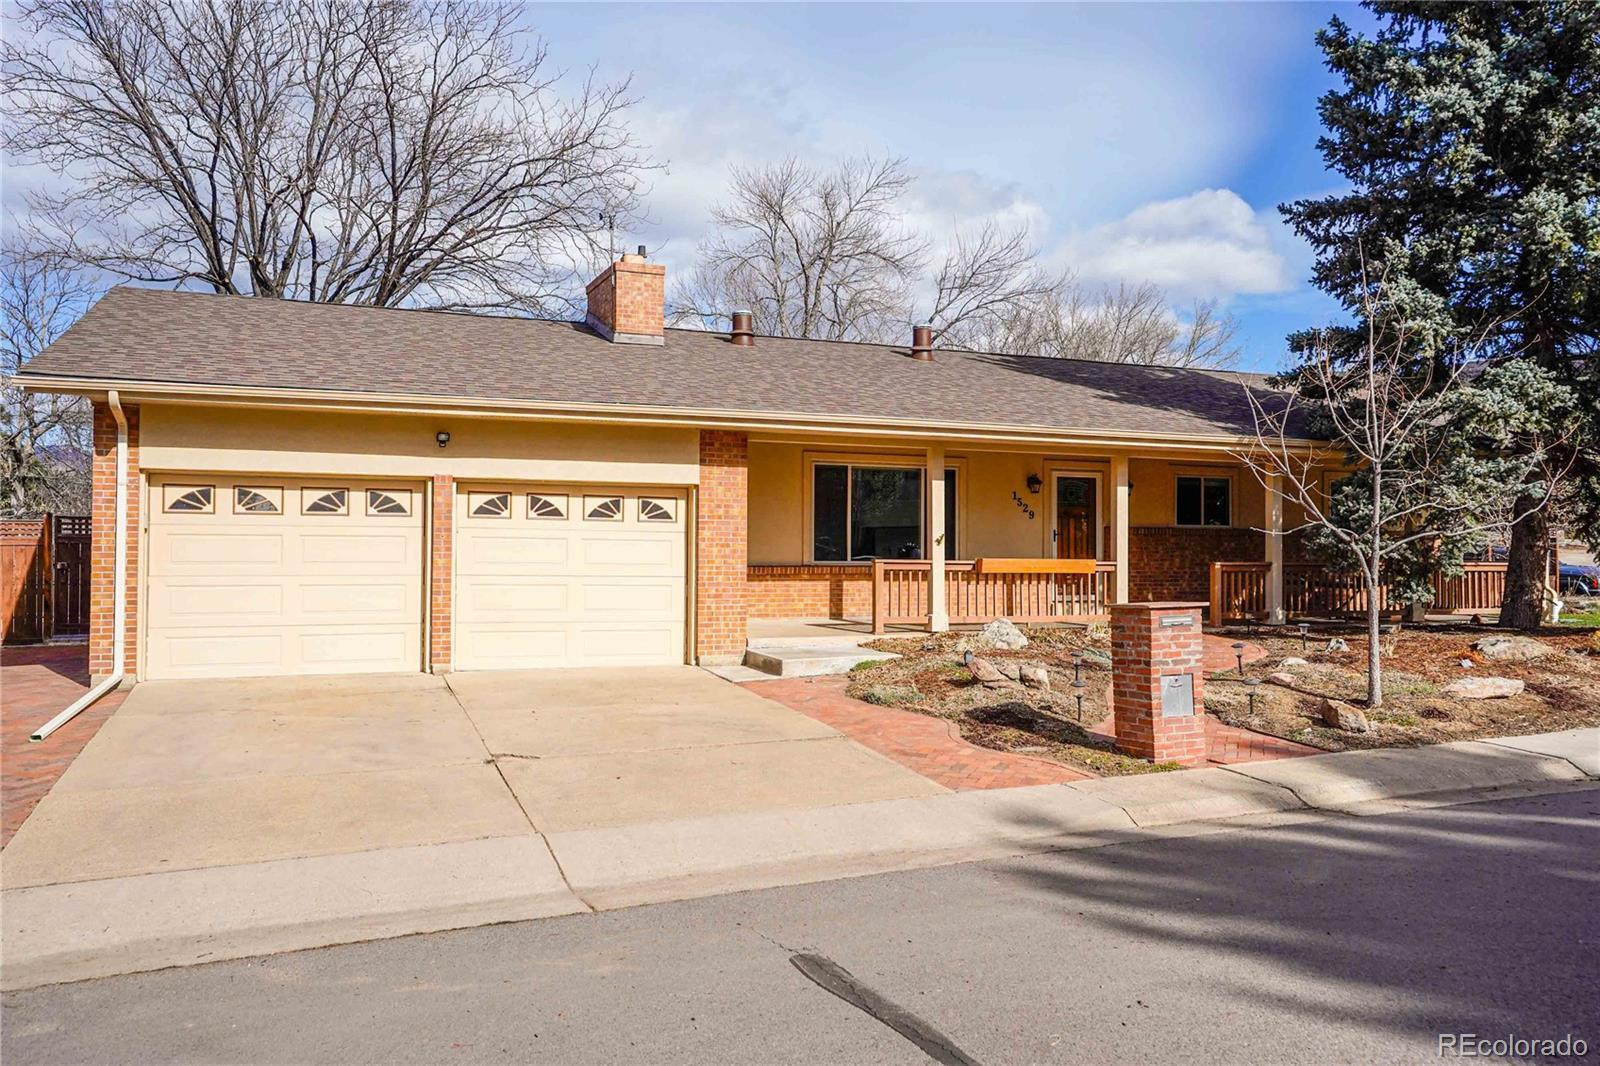 1529 Ulysses Street, Golden, CO 80401 - #: 2816205